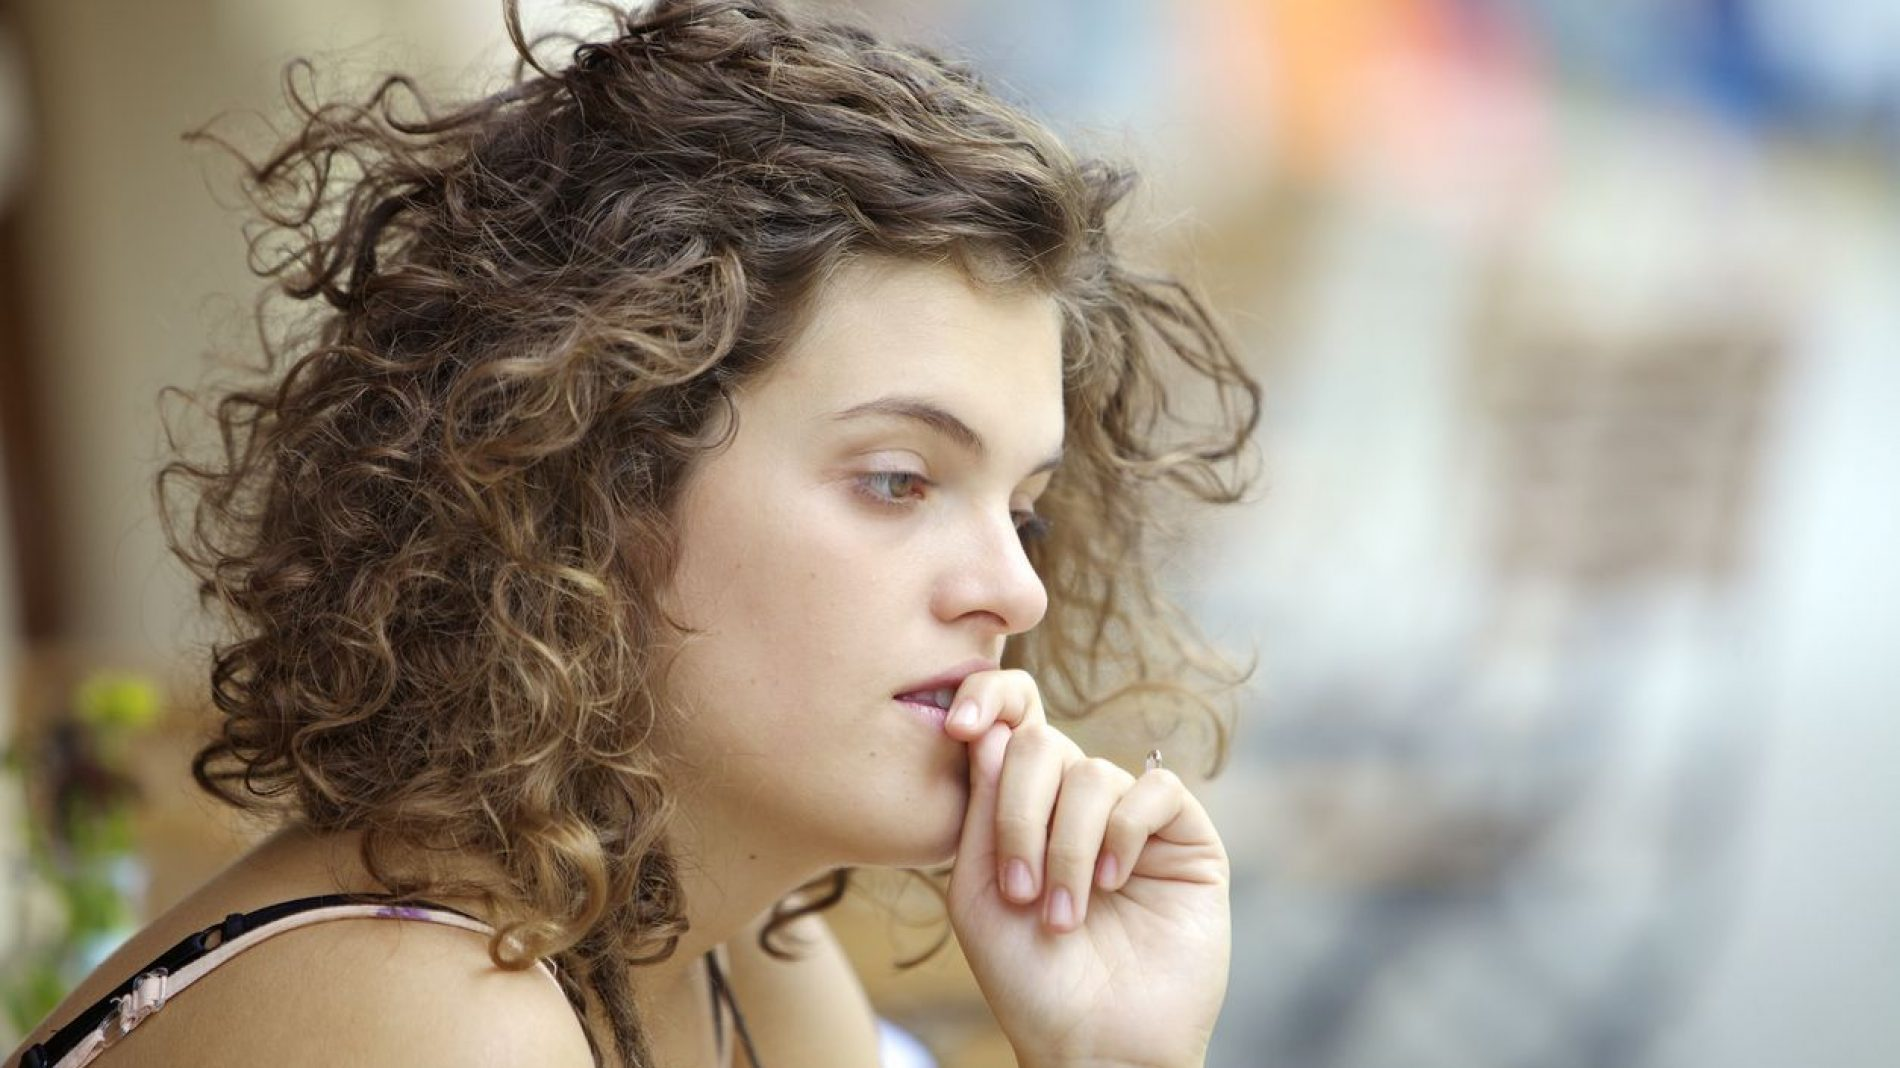 Young woman thinking and looking worried